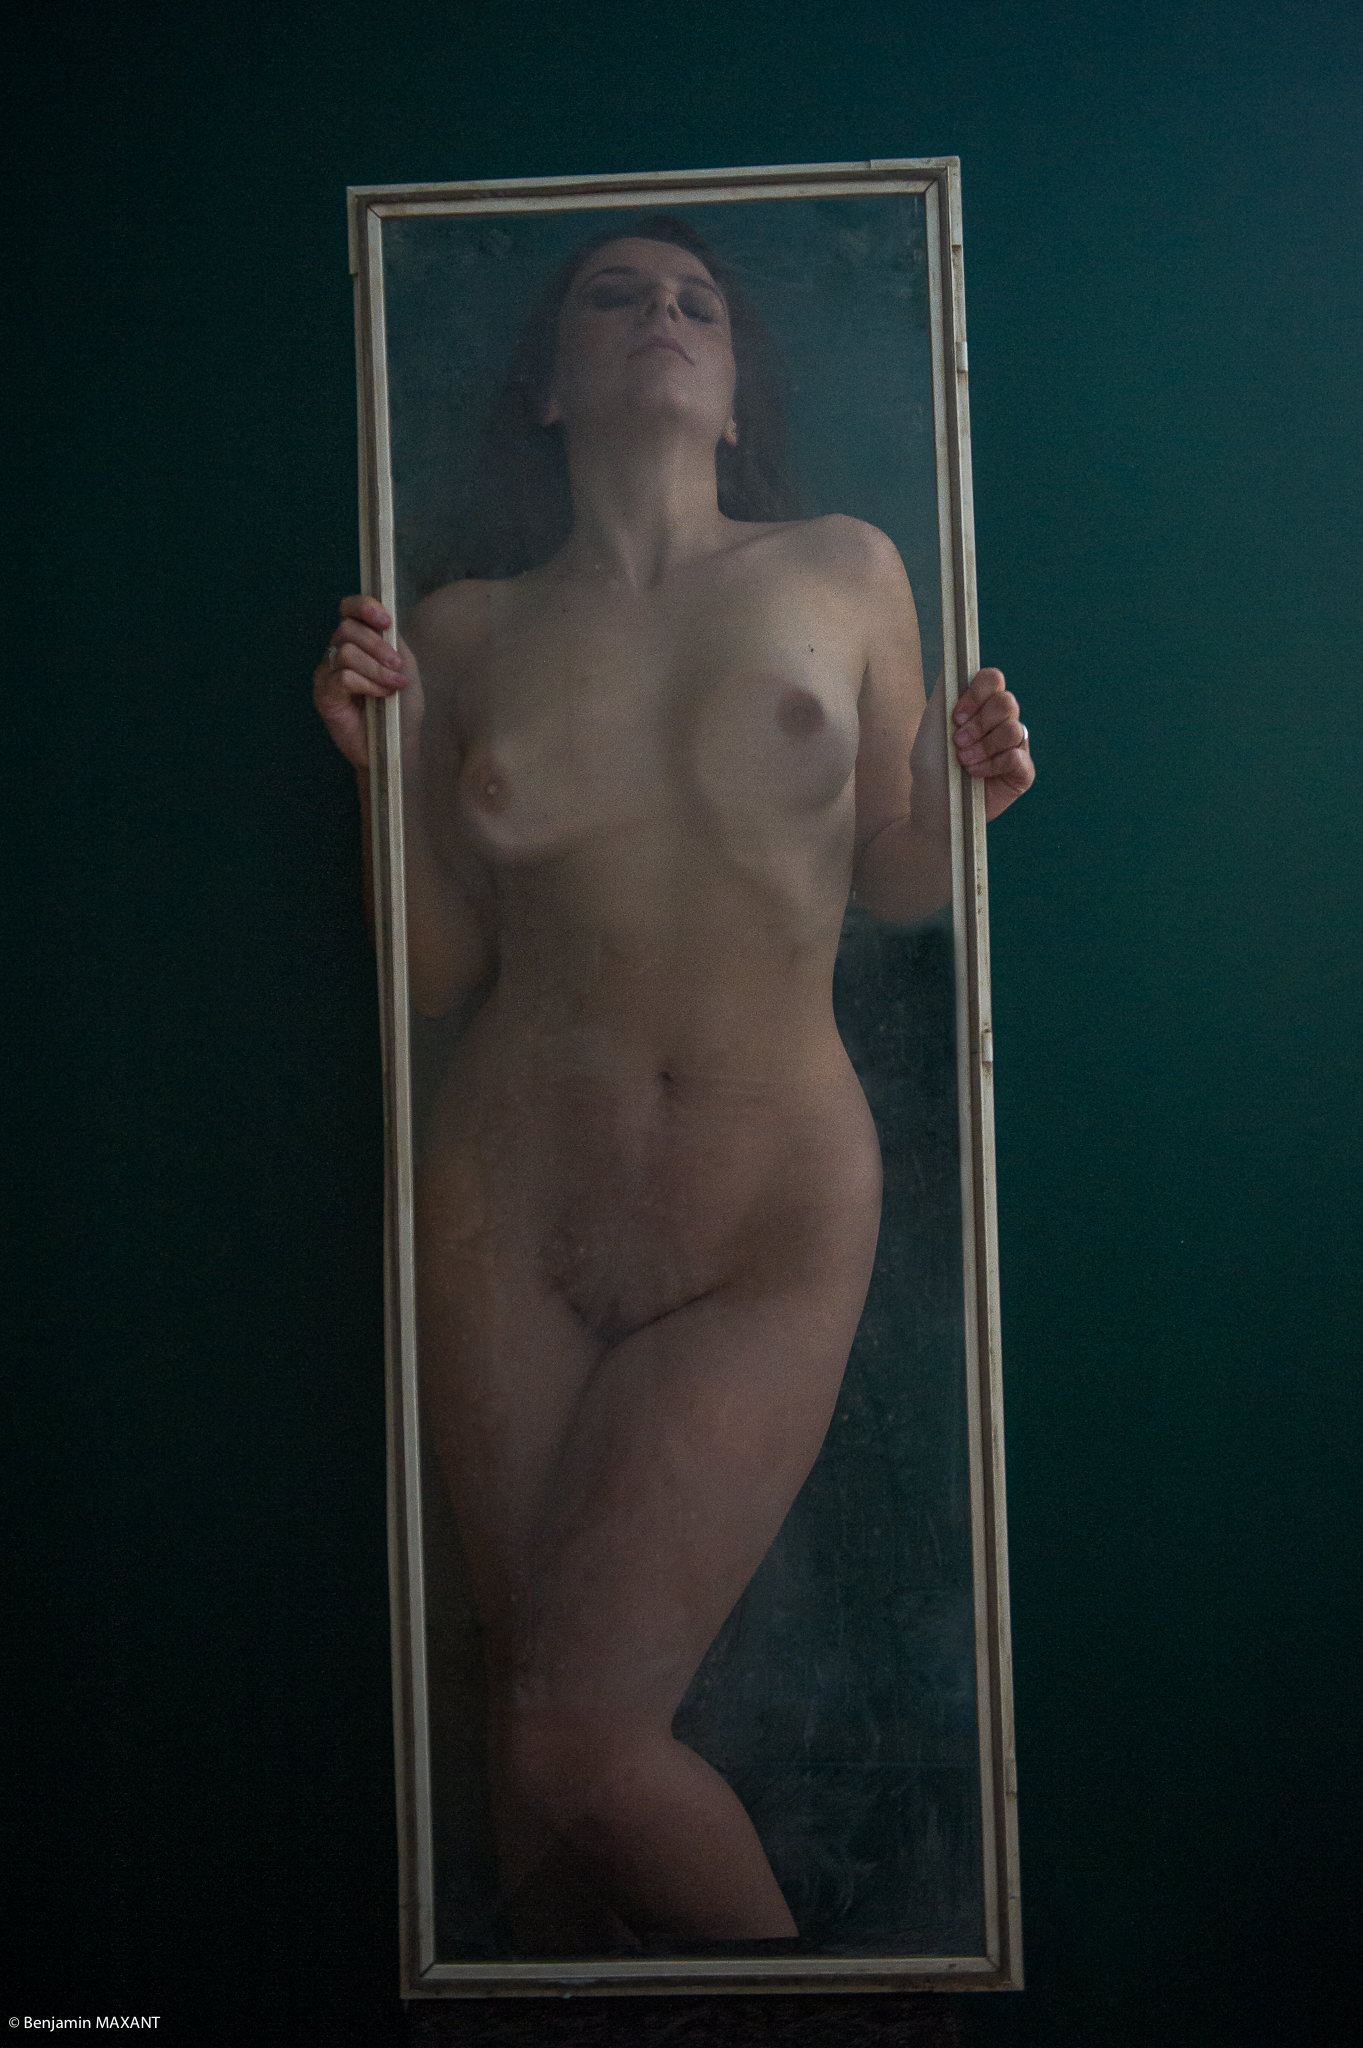 Artistic nude glass photo shoot